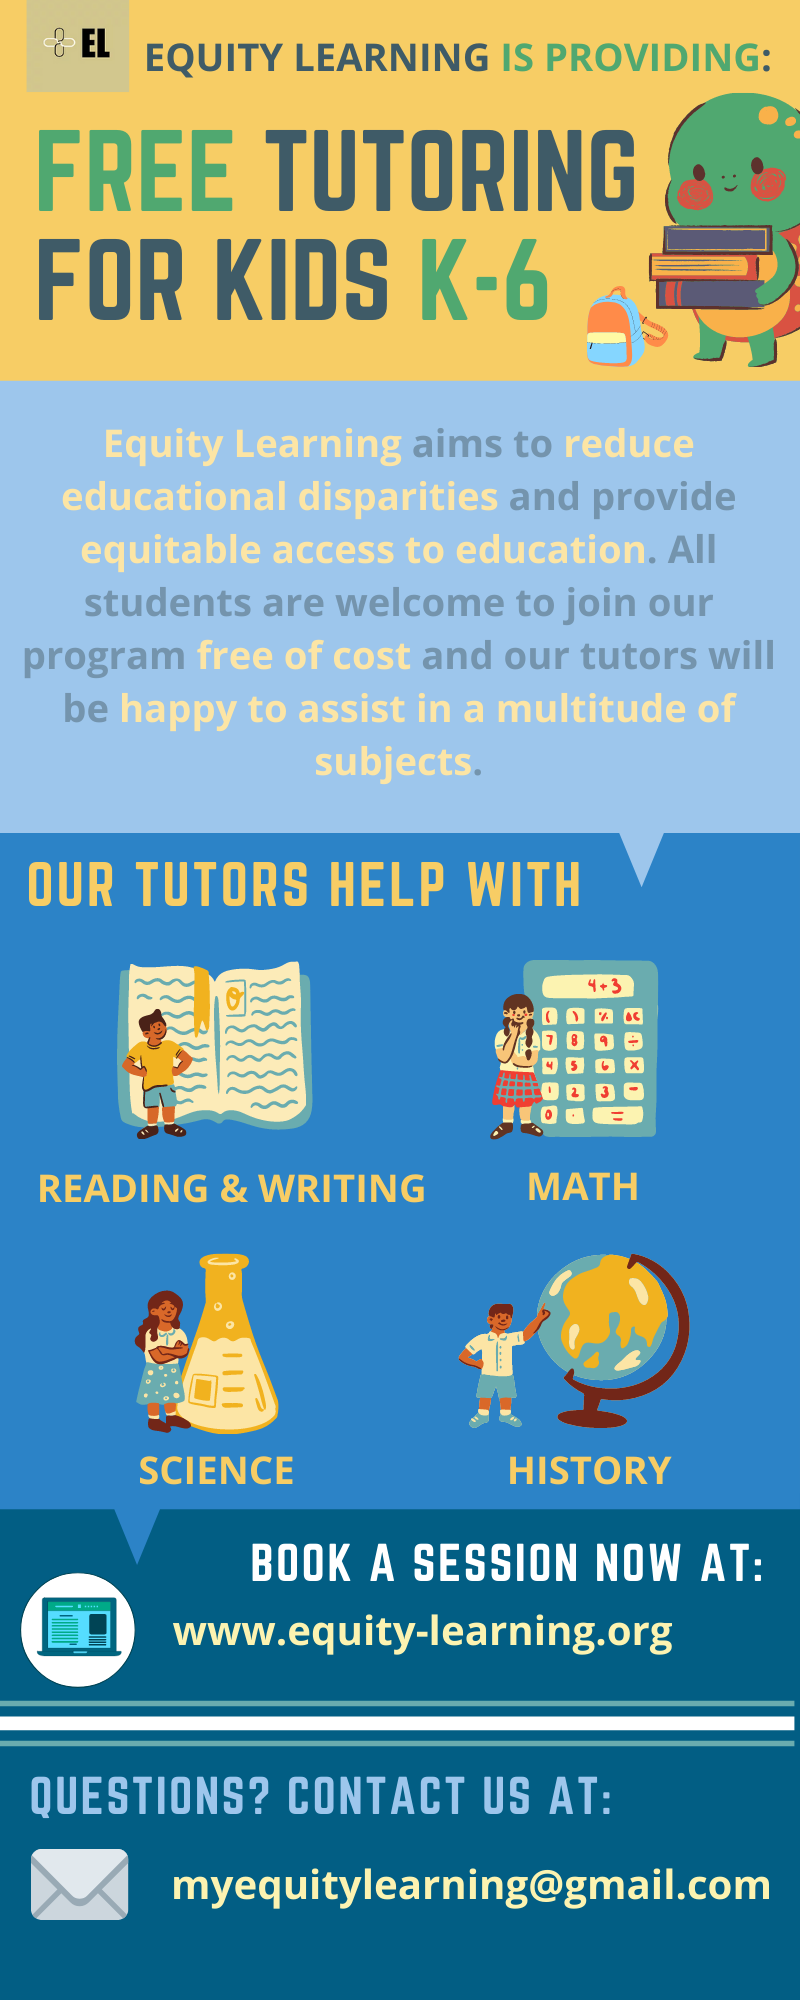 Equity Learning Free Tutoring